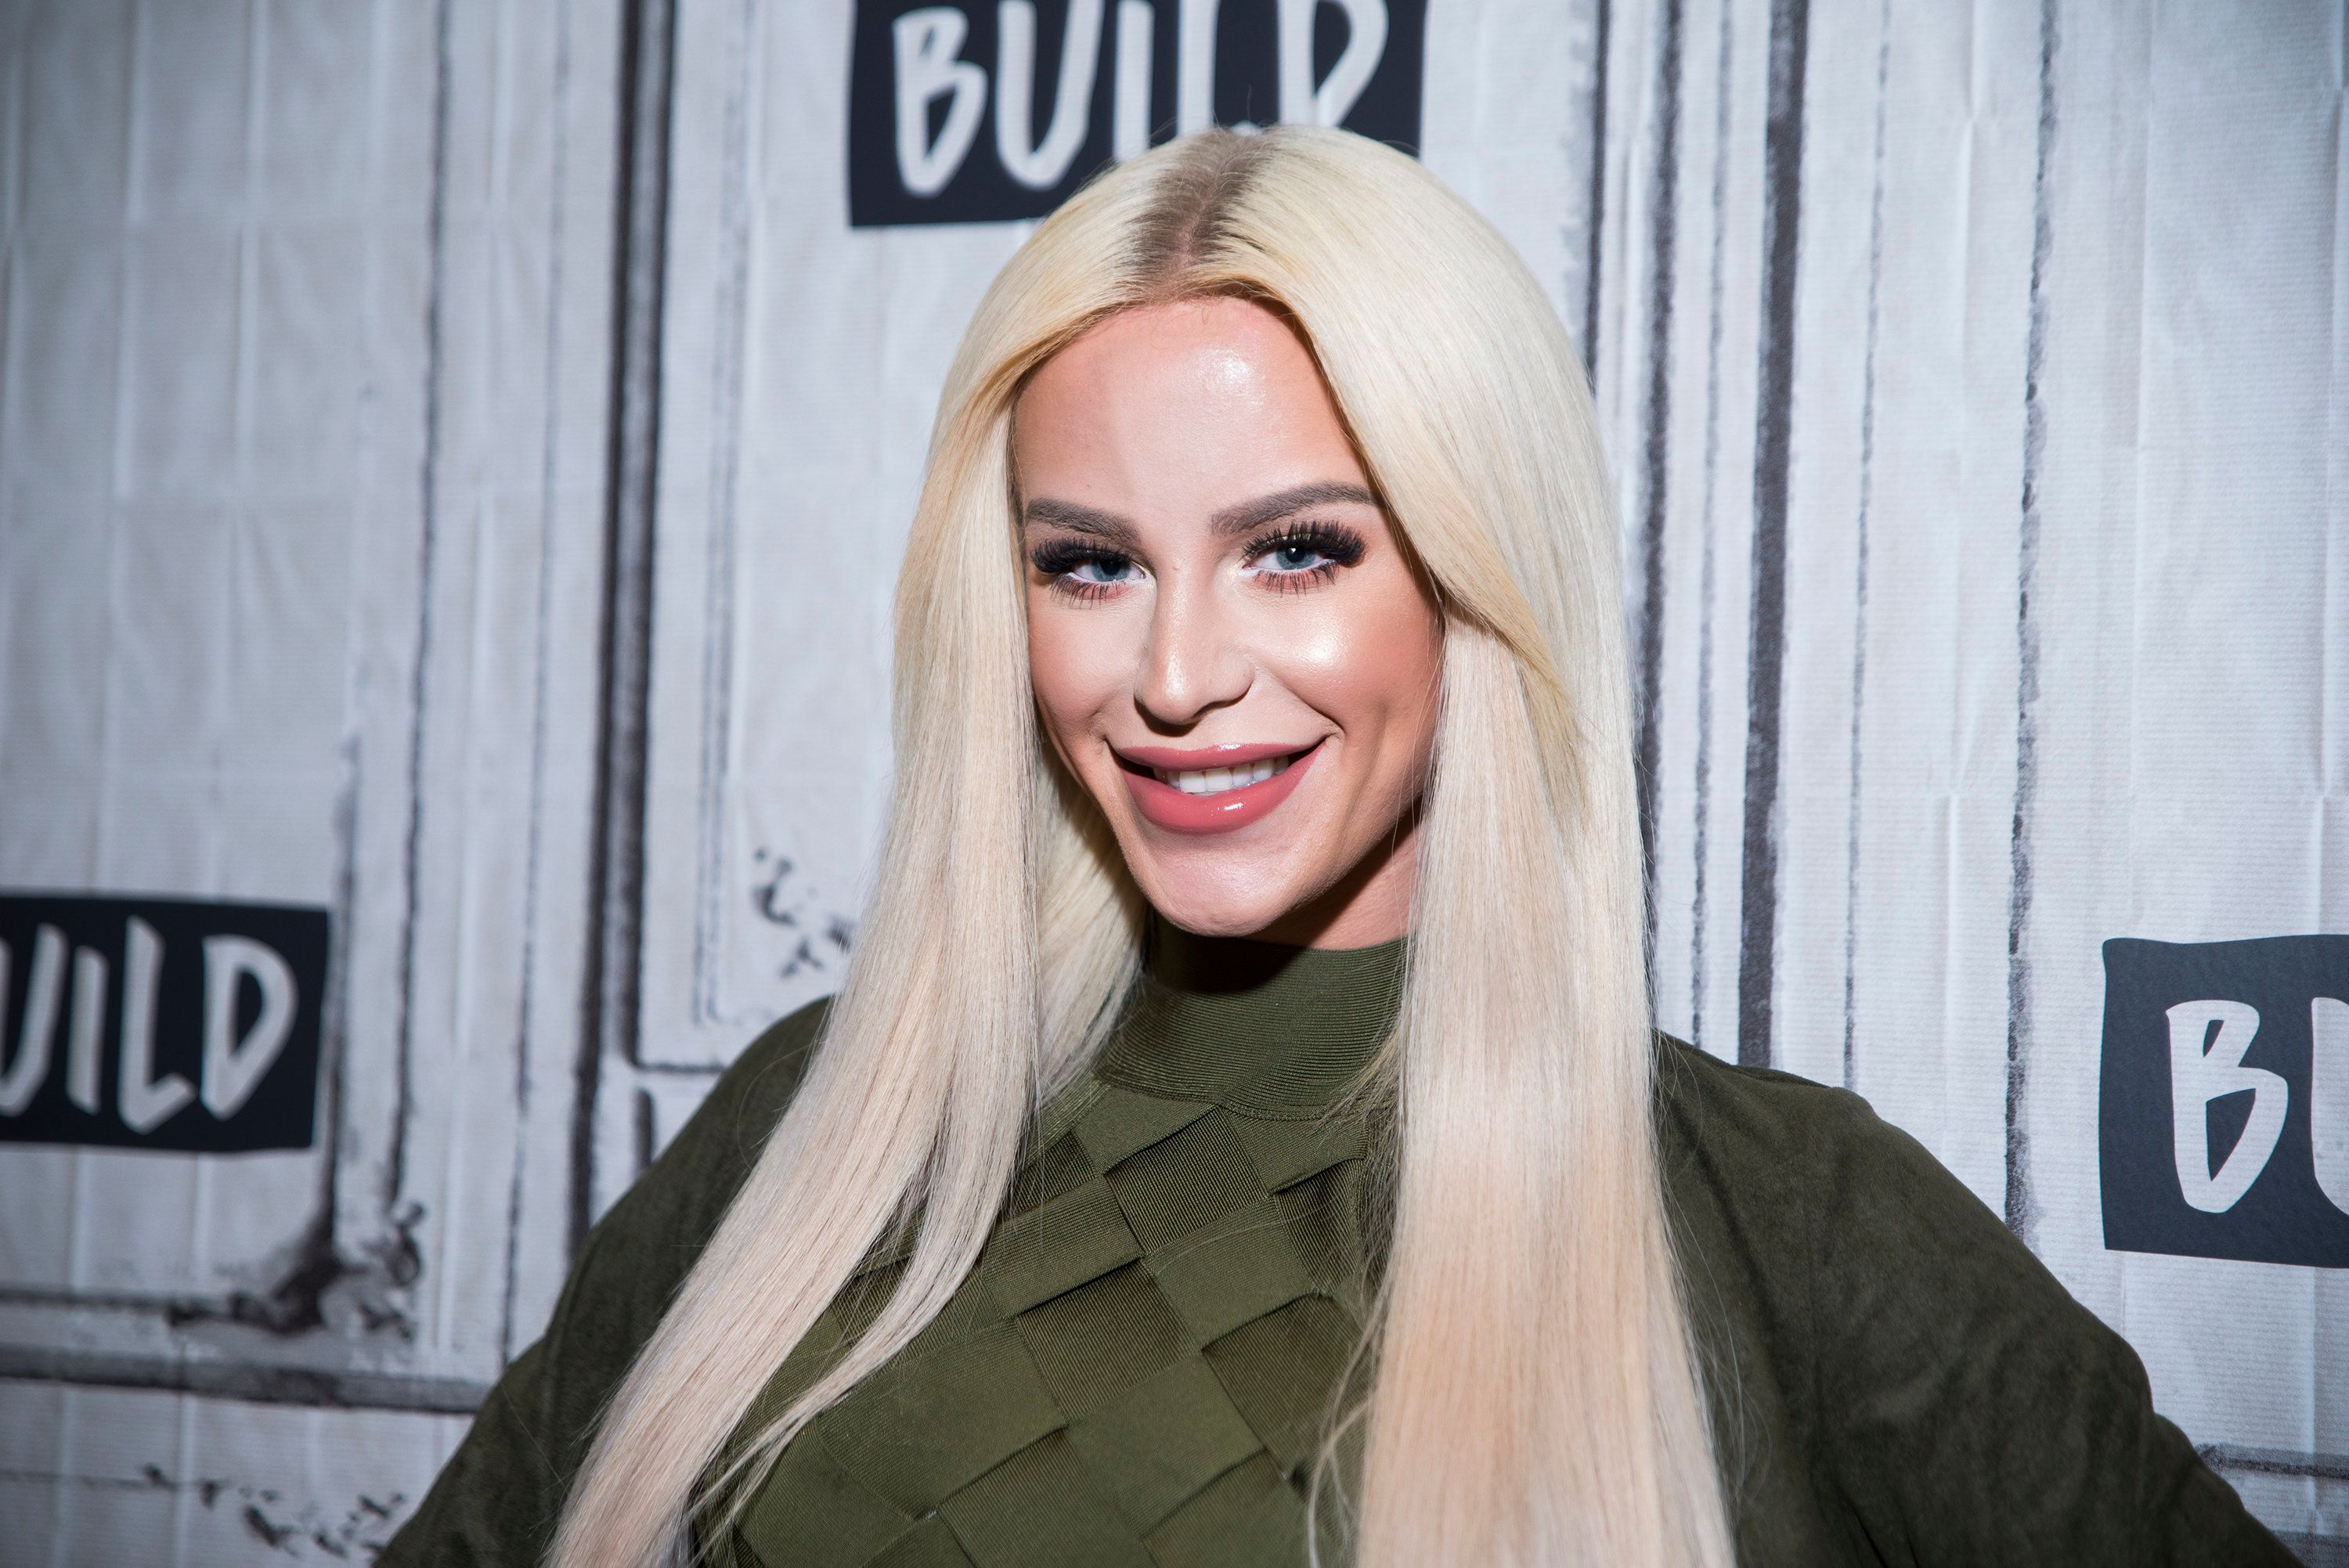 trans youtube star gigi gorgeous opens up about coming out